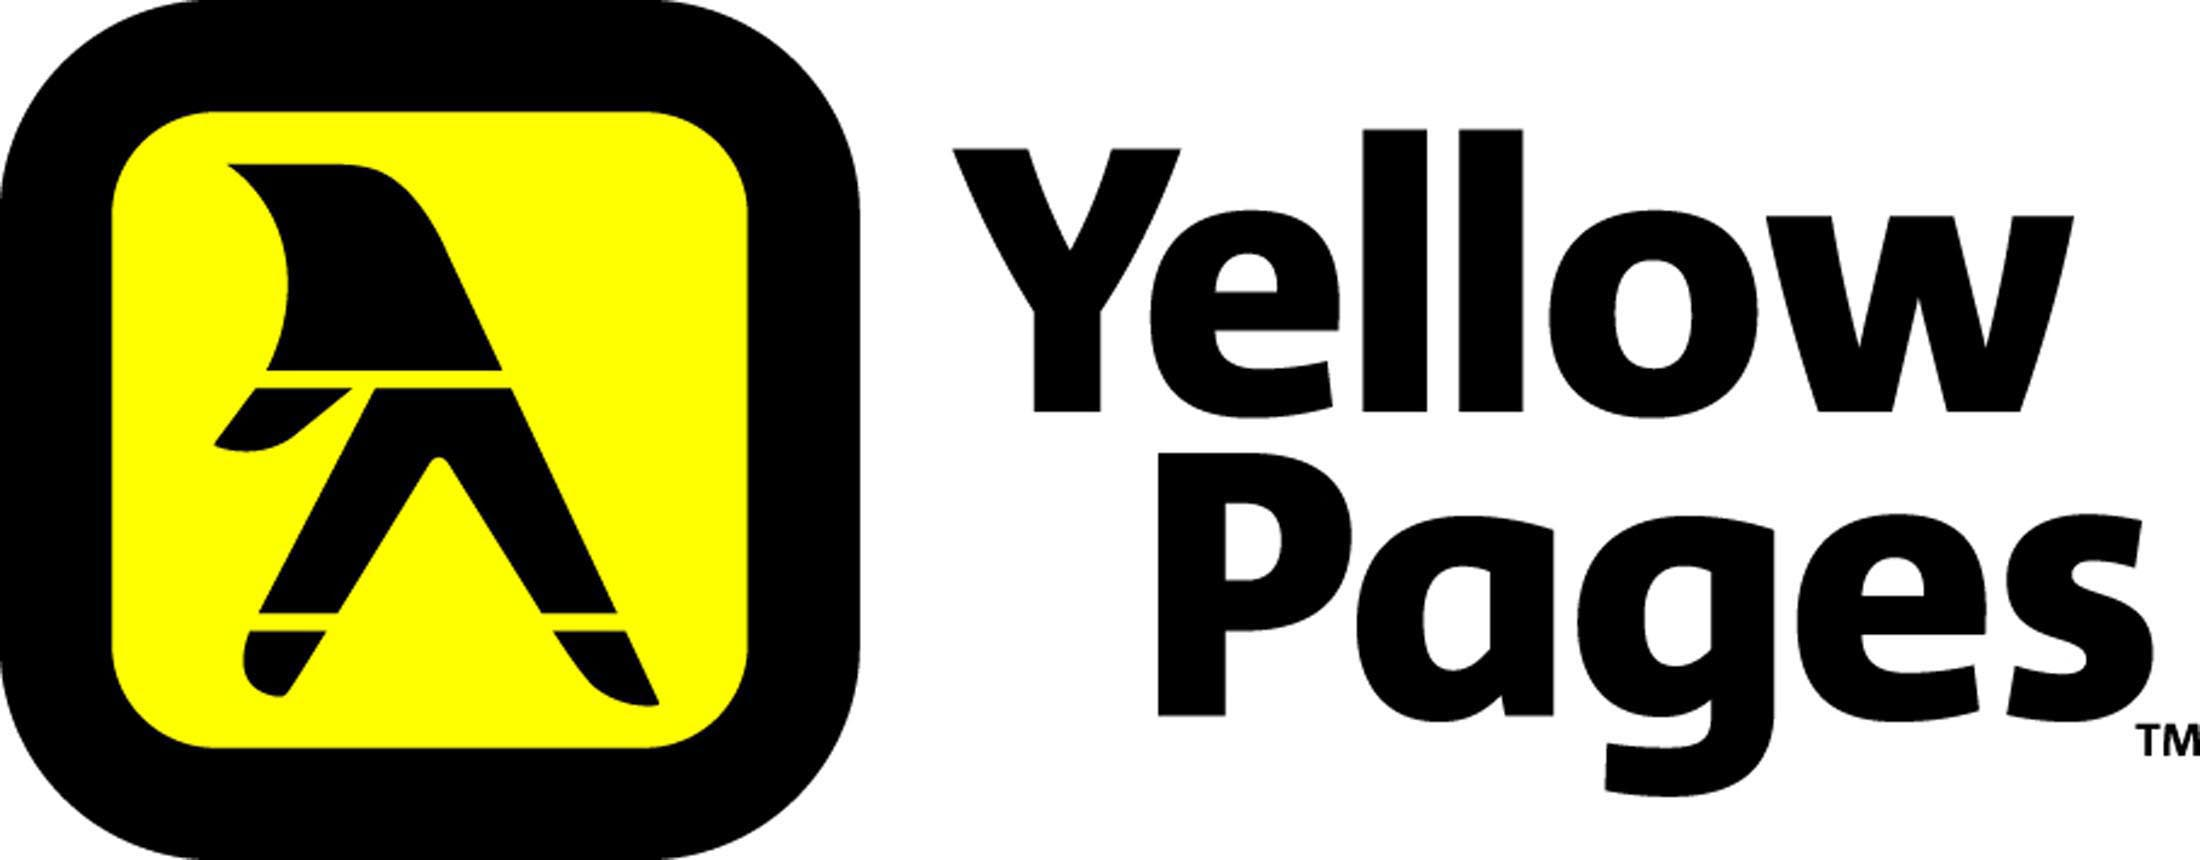 Yellow Pages Co. Logo photo - 1